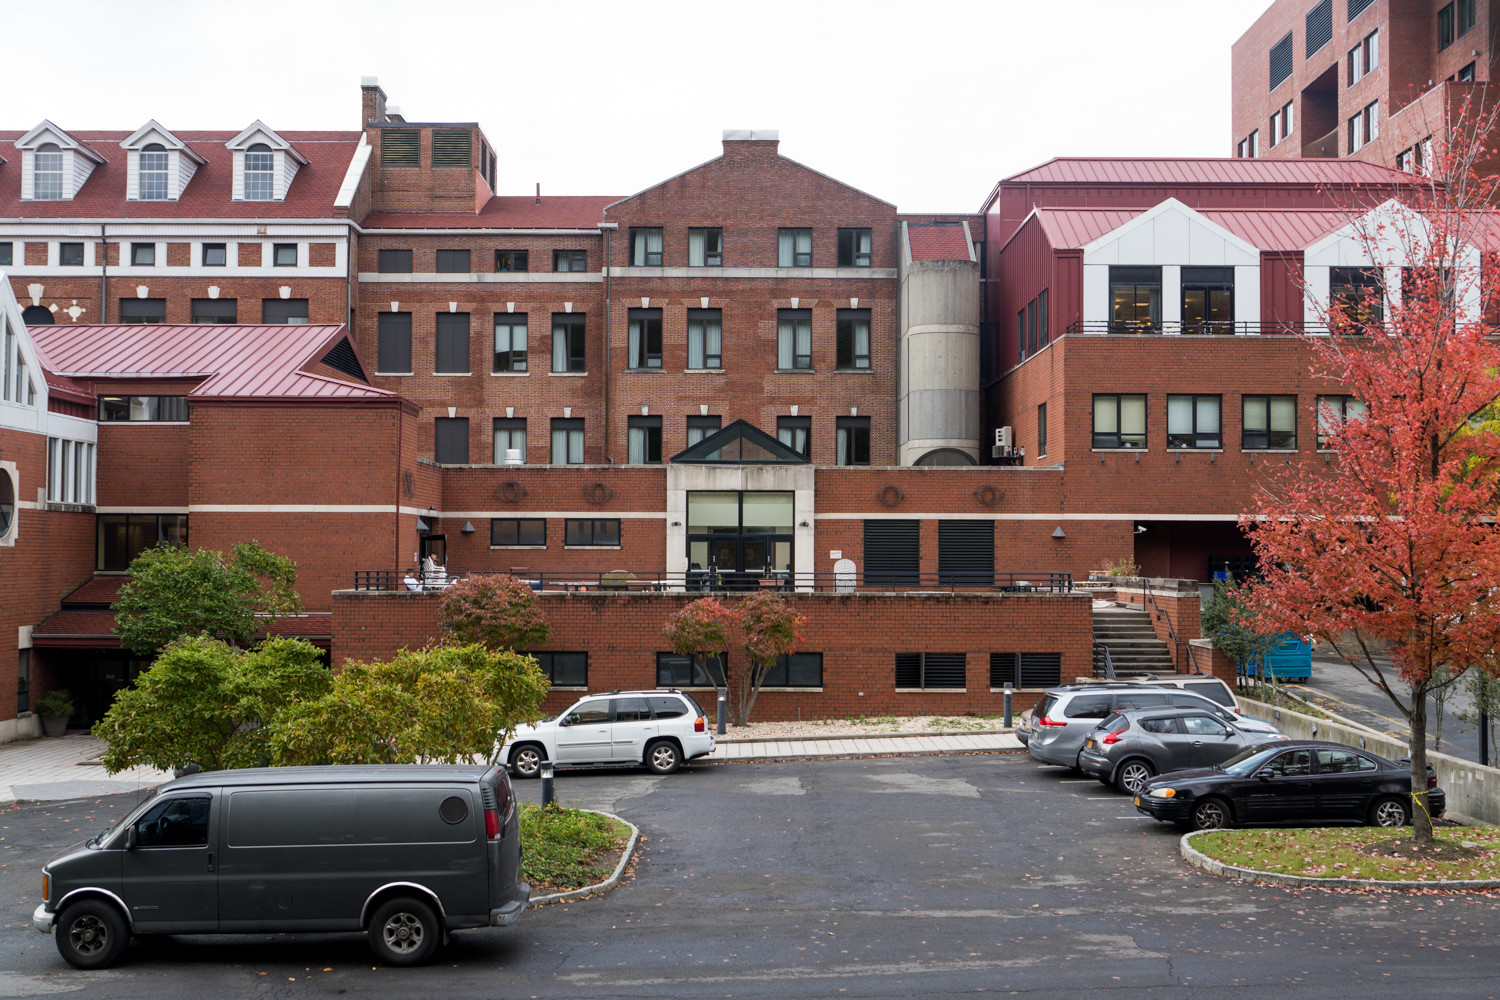 Five residents at the Hebrew Home at Riverdale were treated for Legionnaires' disease, a water-borne type of pneumonia that typically can't spread from person to person.